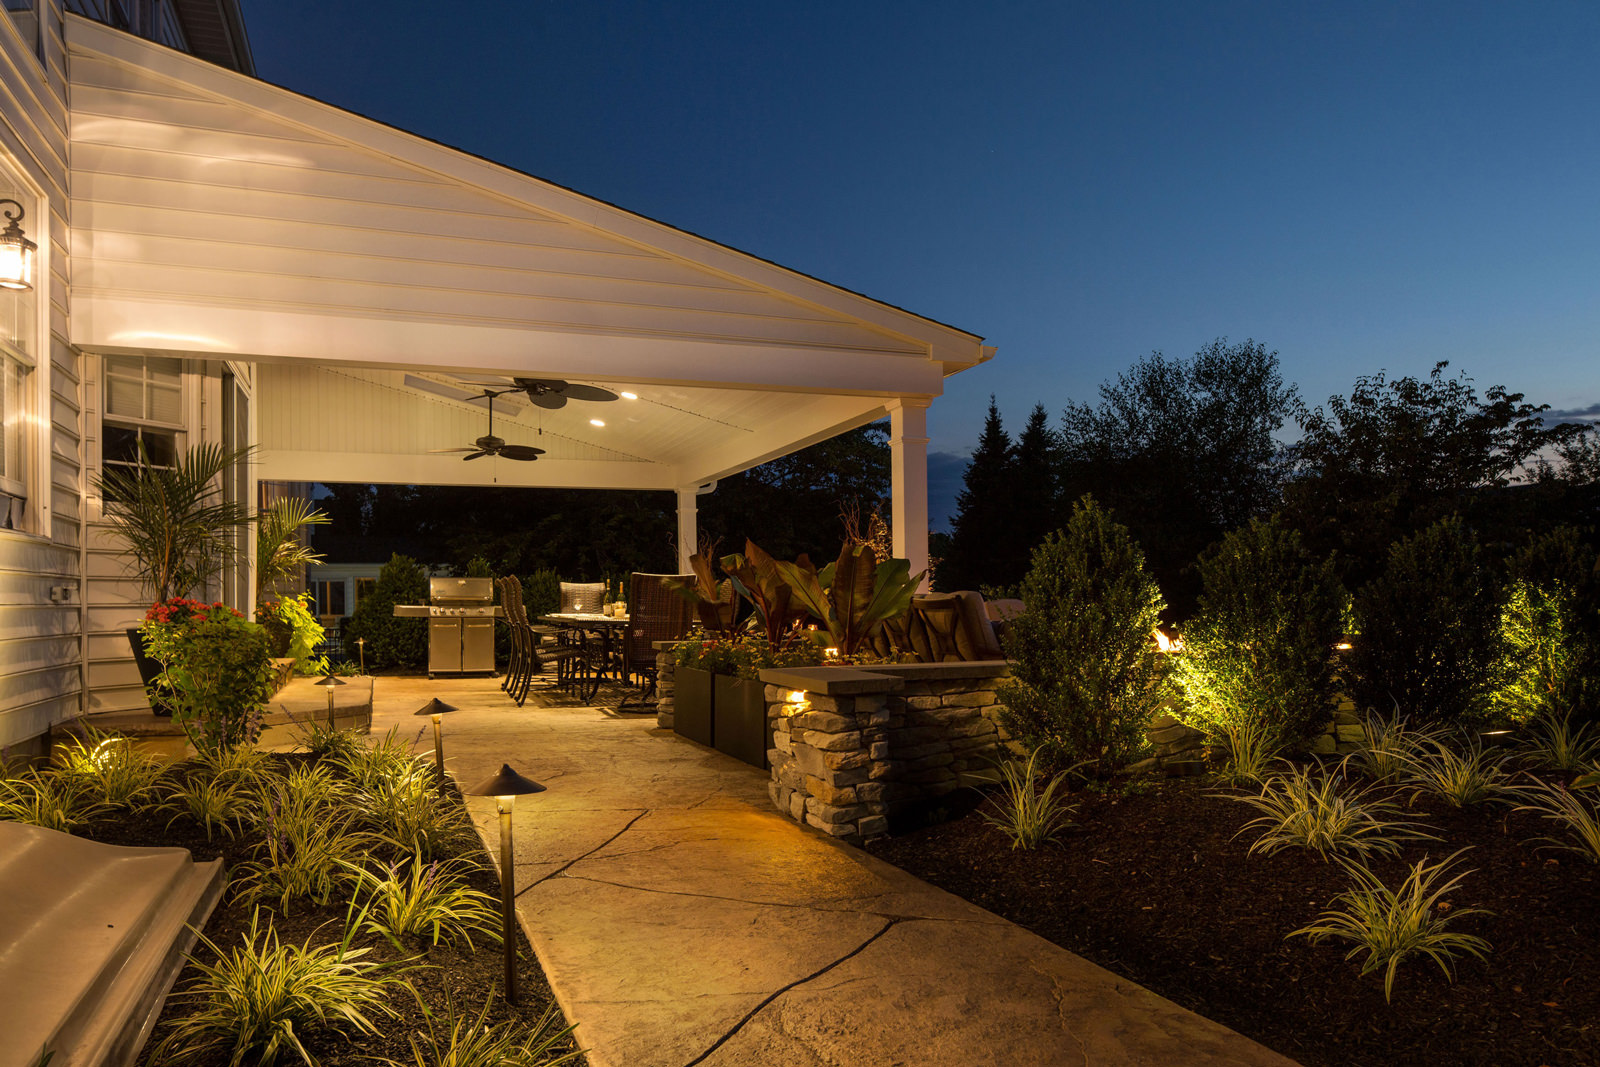 Warm LED landscape lighting is a beautiful way not only to highlight your garden, but to make sure you can see where you're walking at night!